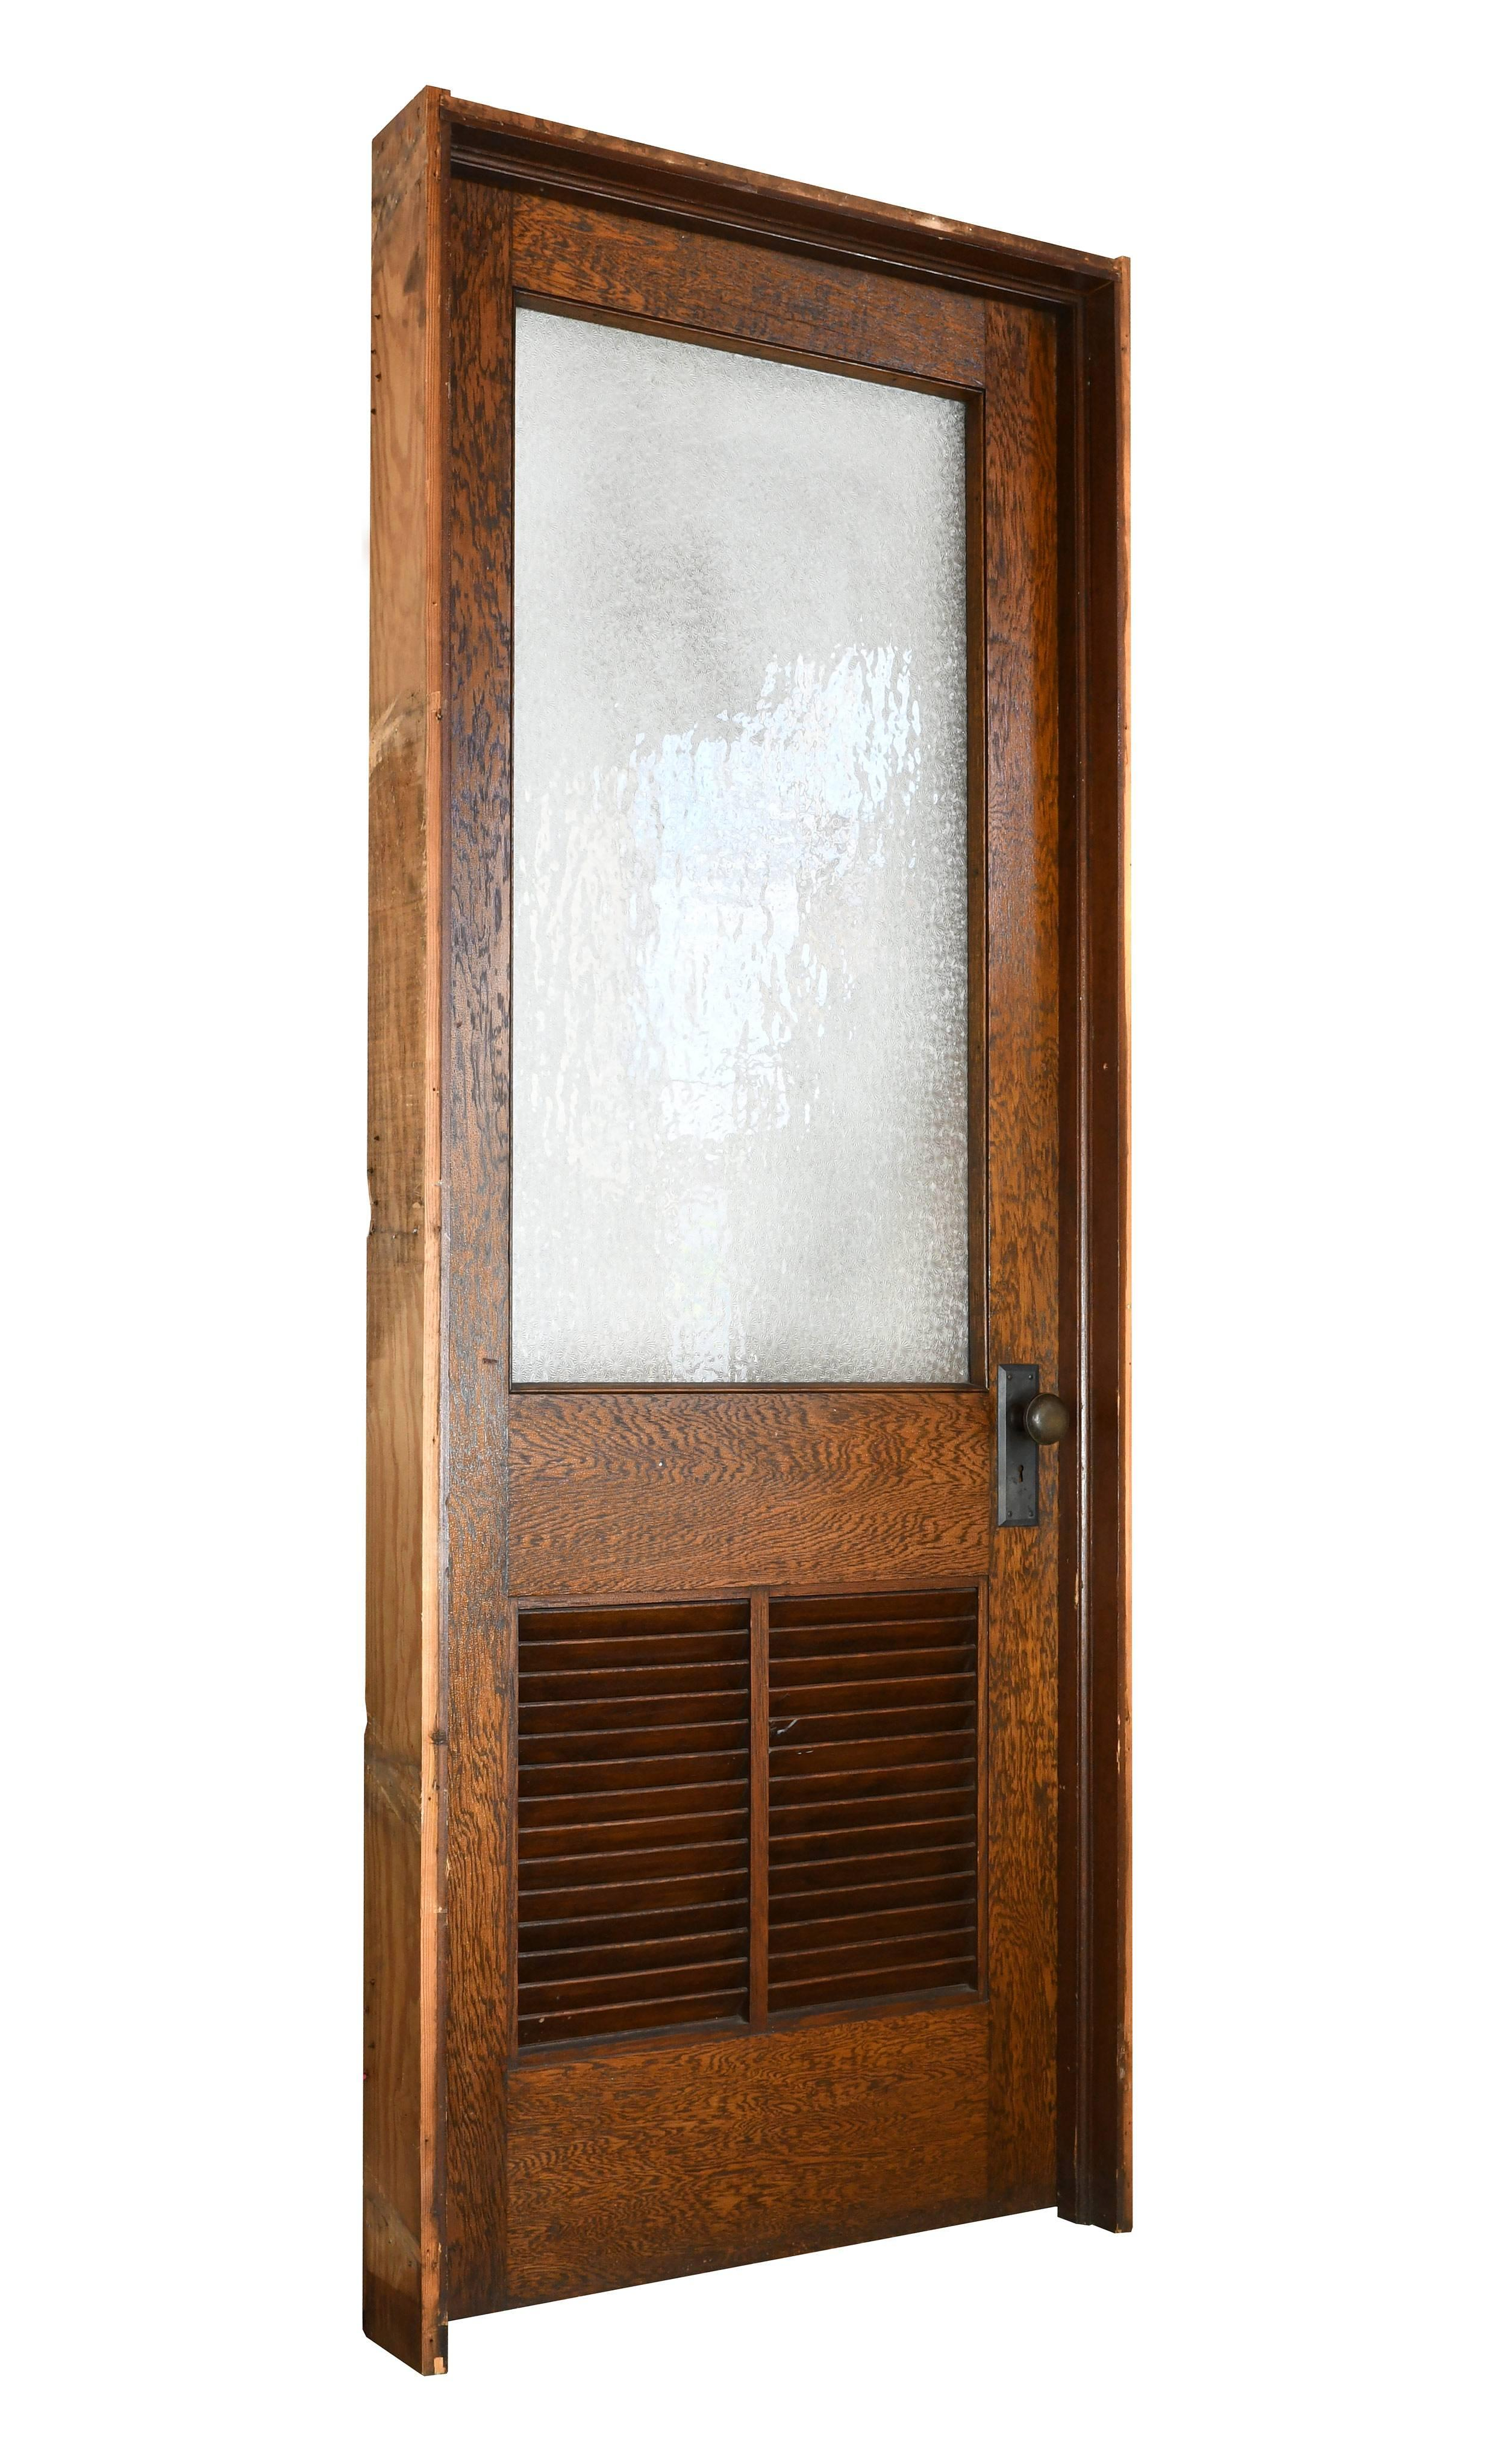 These oak schoolhouse doors feature highly contrasted wood grain textured snowflake glass wooden vent  sc 1 st  1stDibs & Oak Schoolhouse Door with Vent at 1stdibs